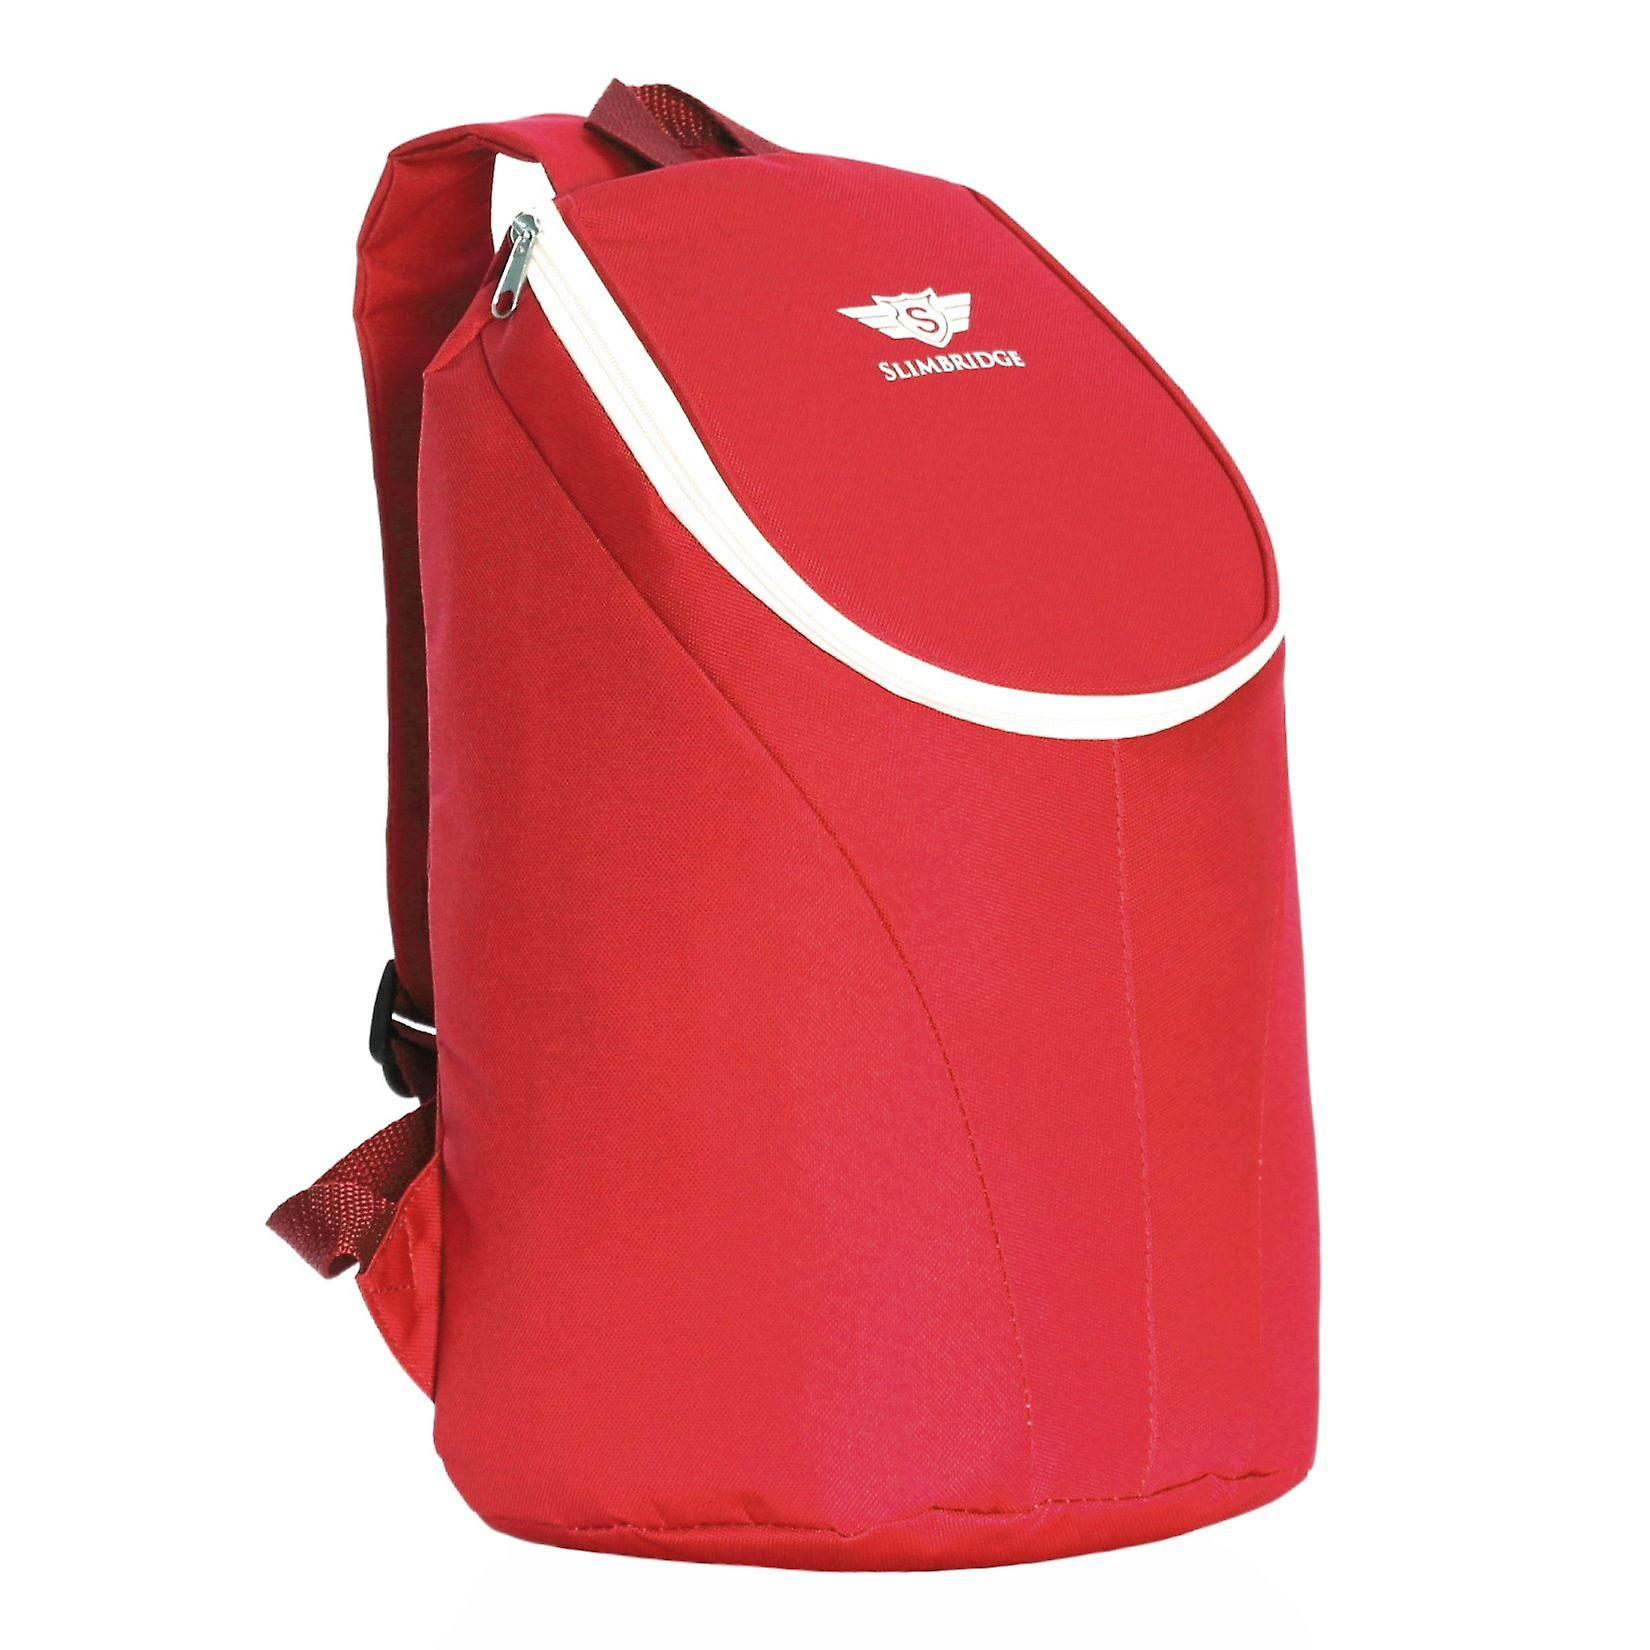 Slimbridge Seatown Insulated Picnic Backpack, Red